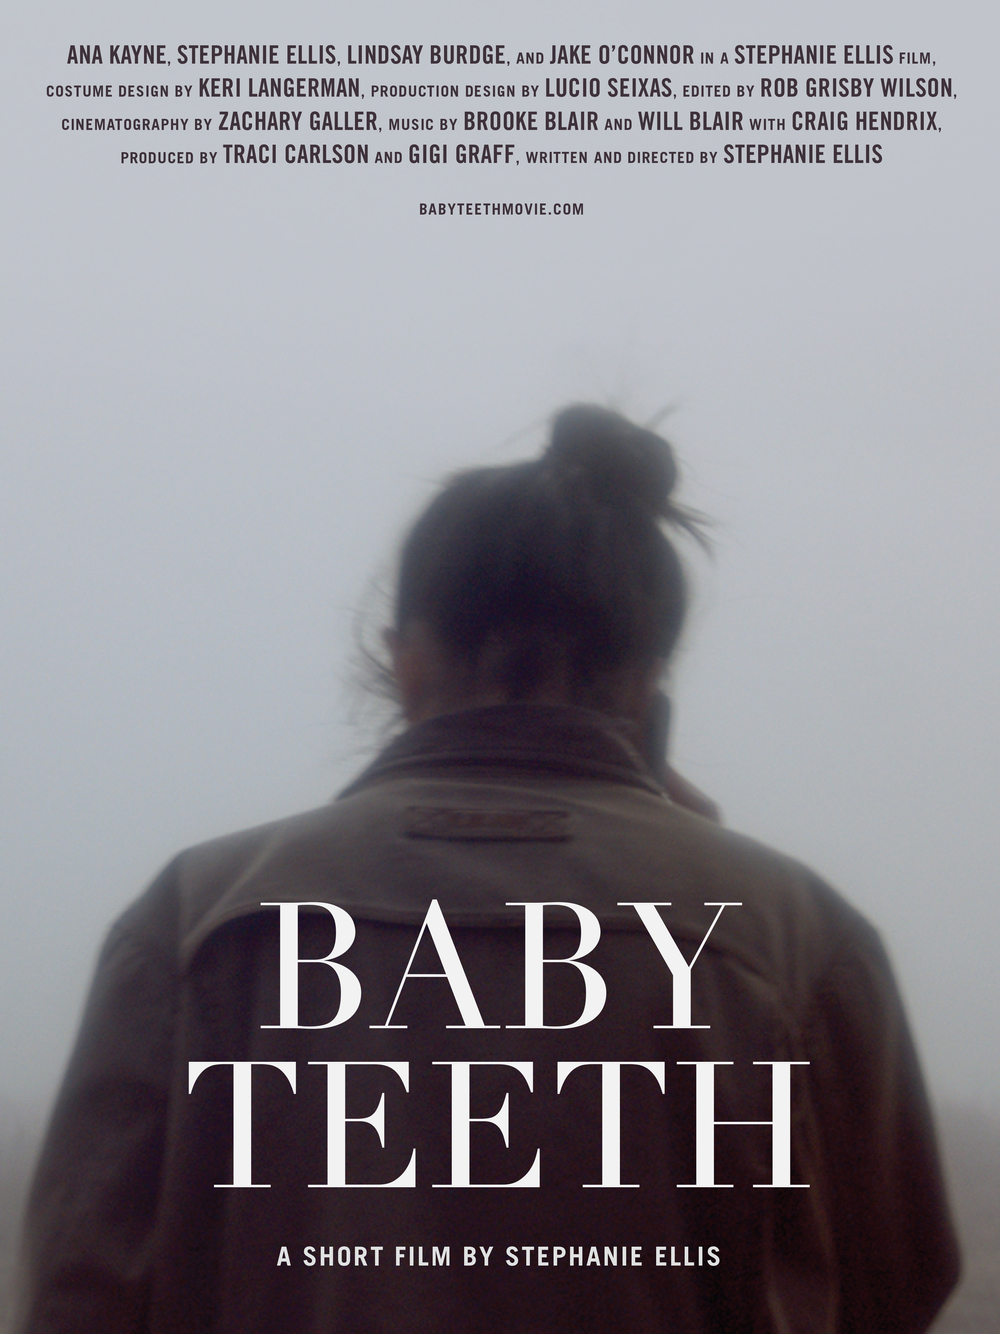 baby teeth poster (large).jpg